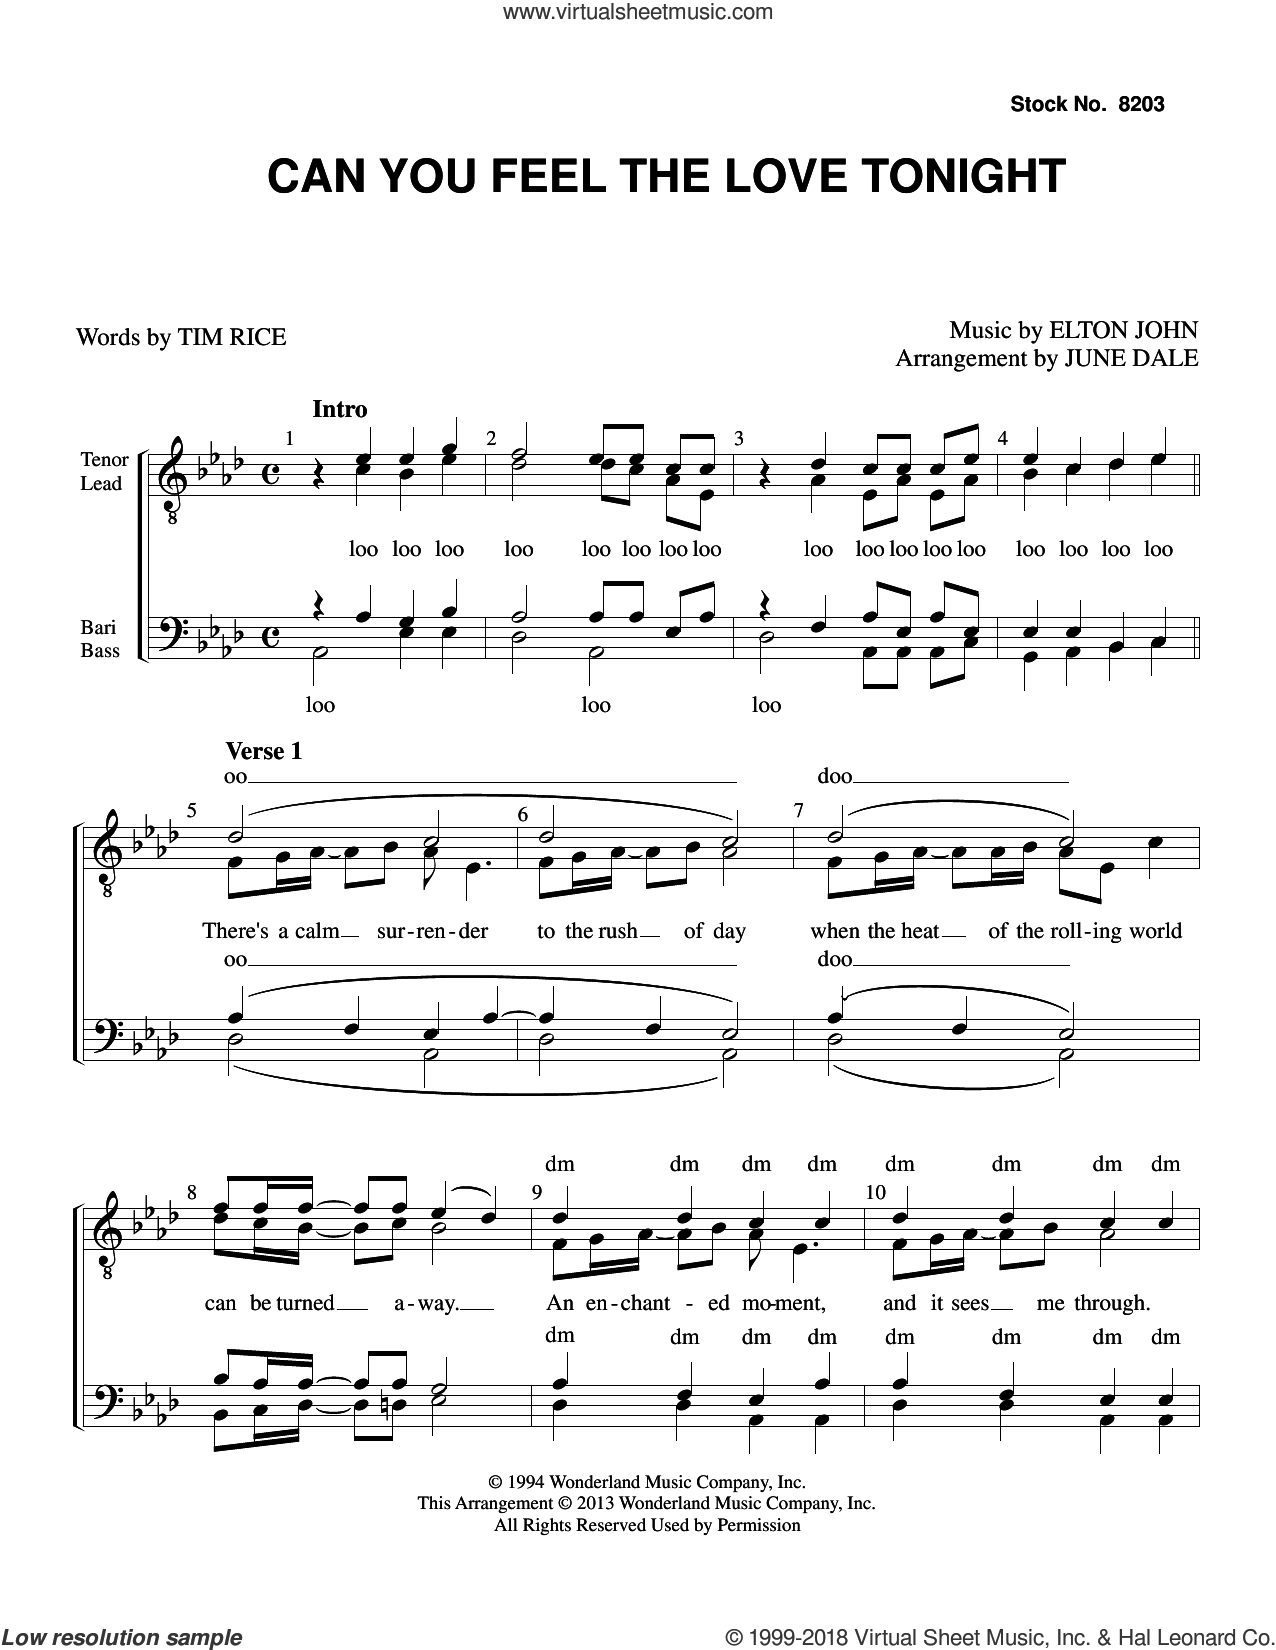 Can You Feel the Love Tonight (from The Lion King) (arr. June Dale) sheet music for choir (TTBB: tenor, bass) by Elton John, June Dale and Tim Rice, intermediate skill level